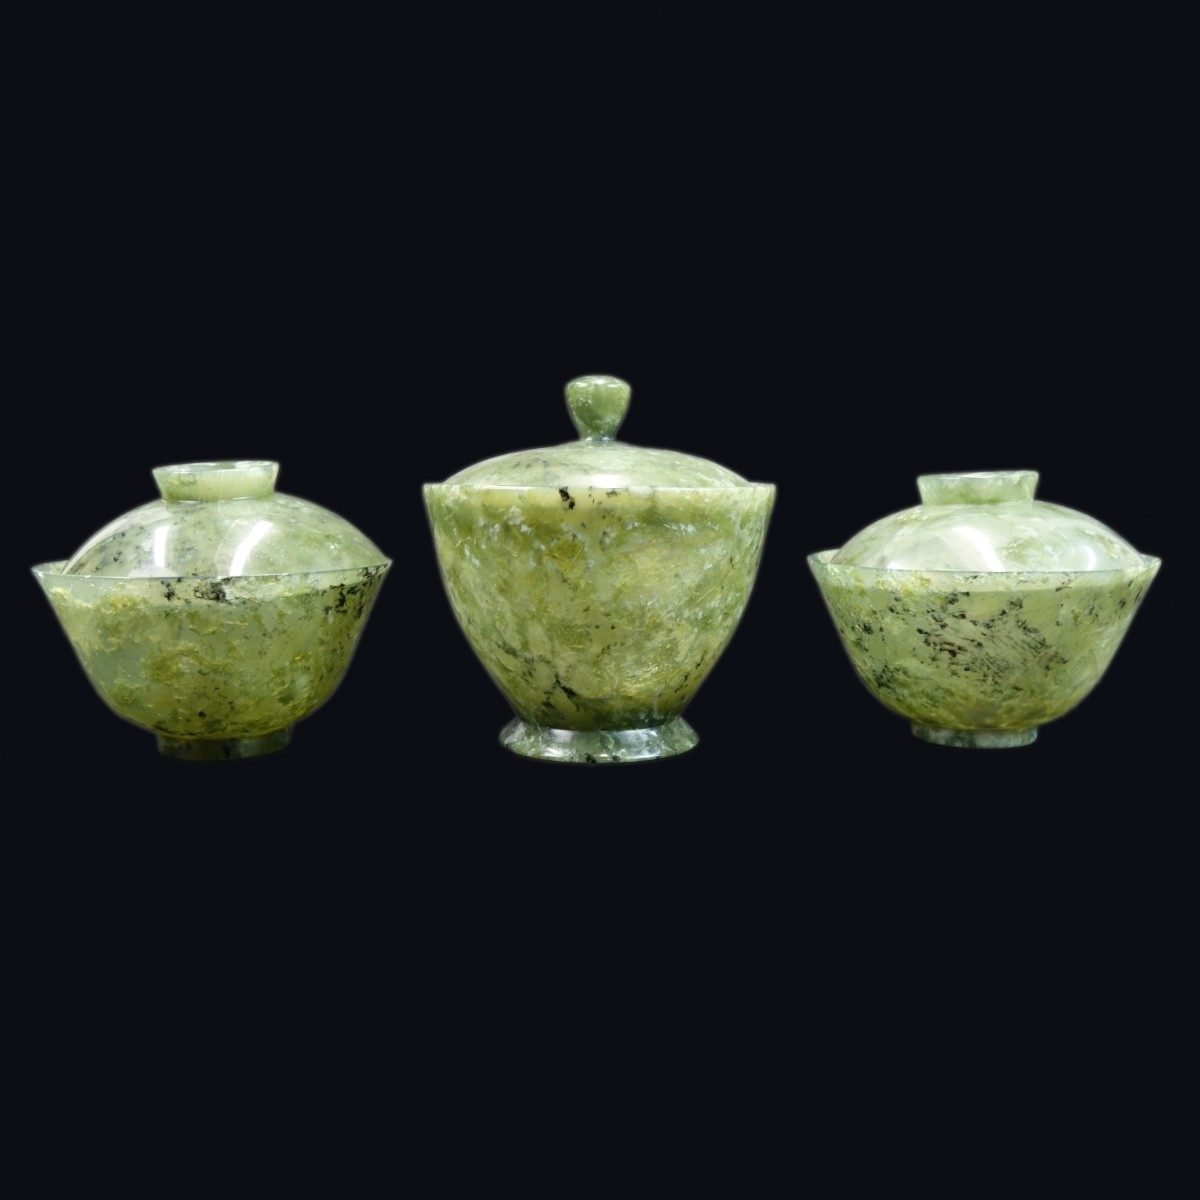 3 Chinese Jade Covered Bowls